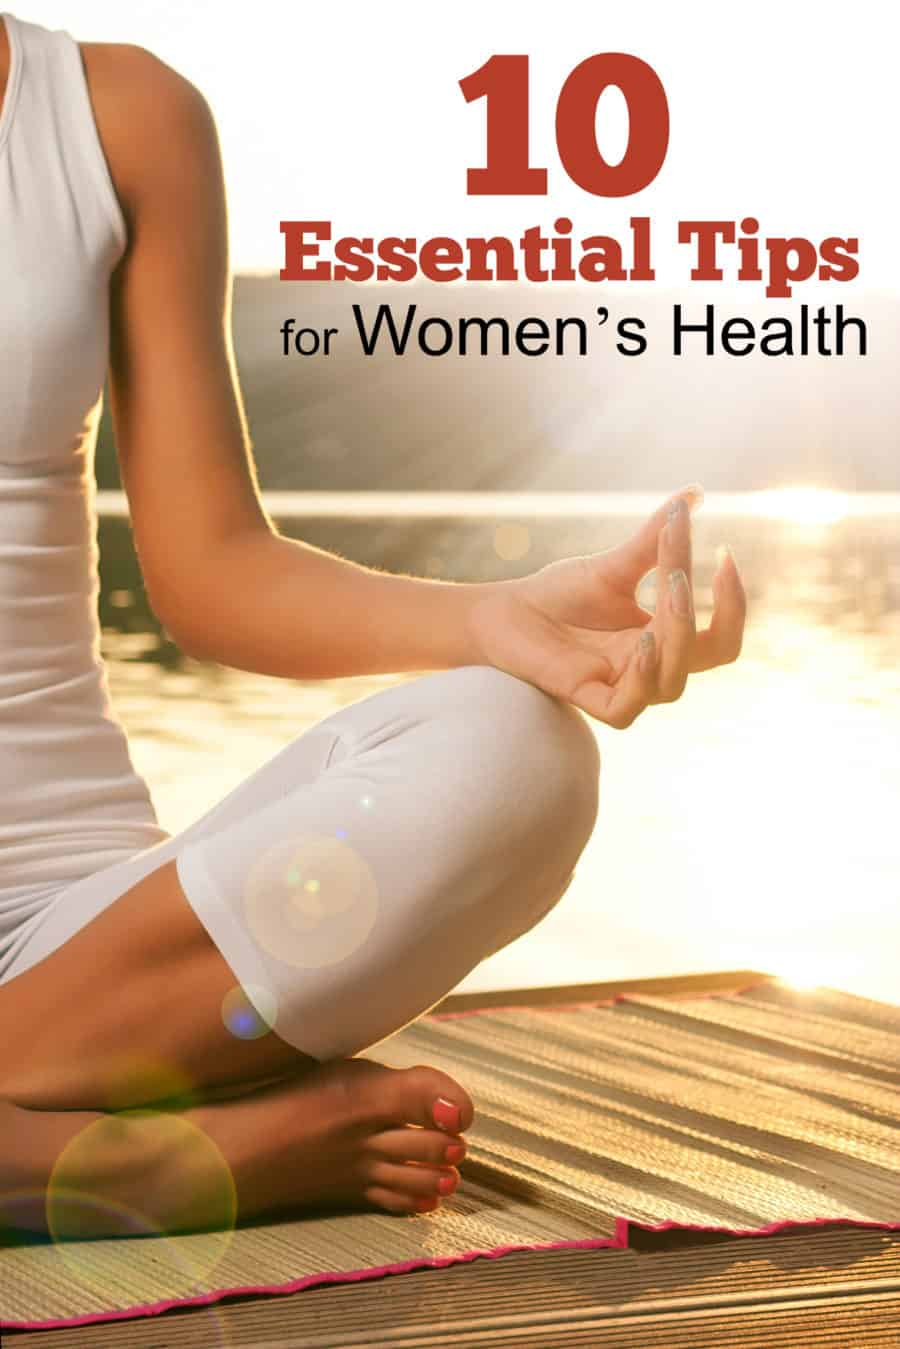 10 Essential Tips for Women's Health